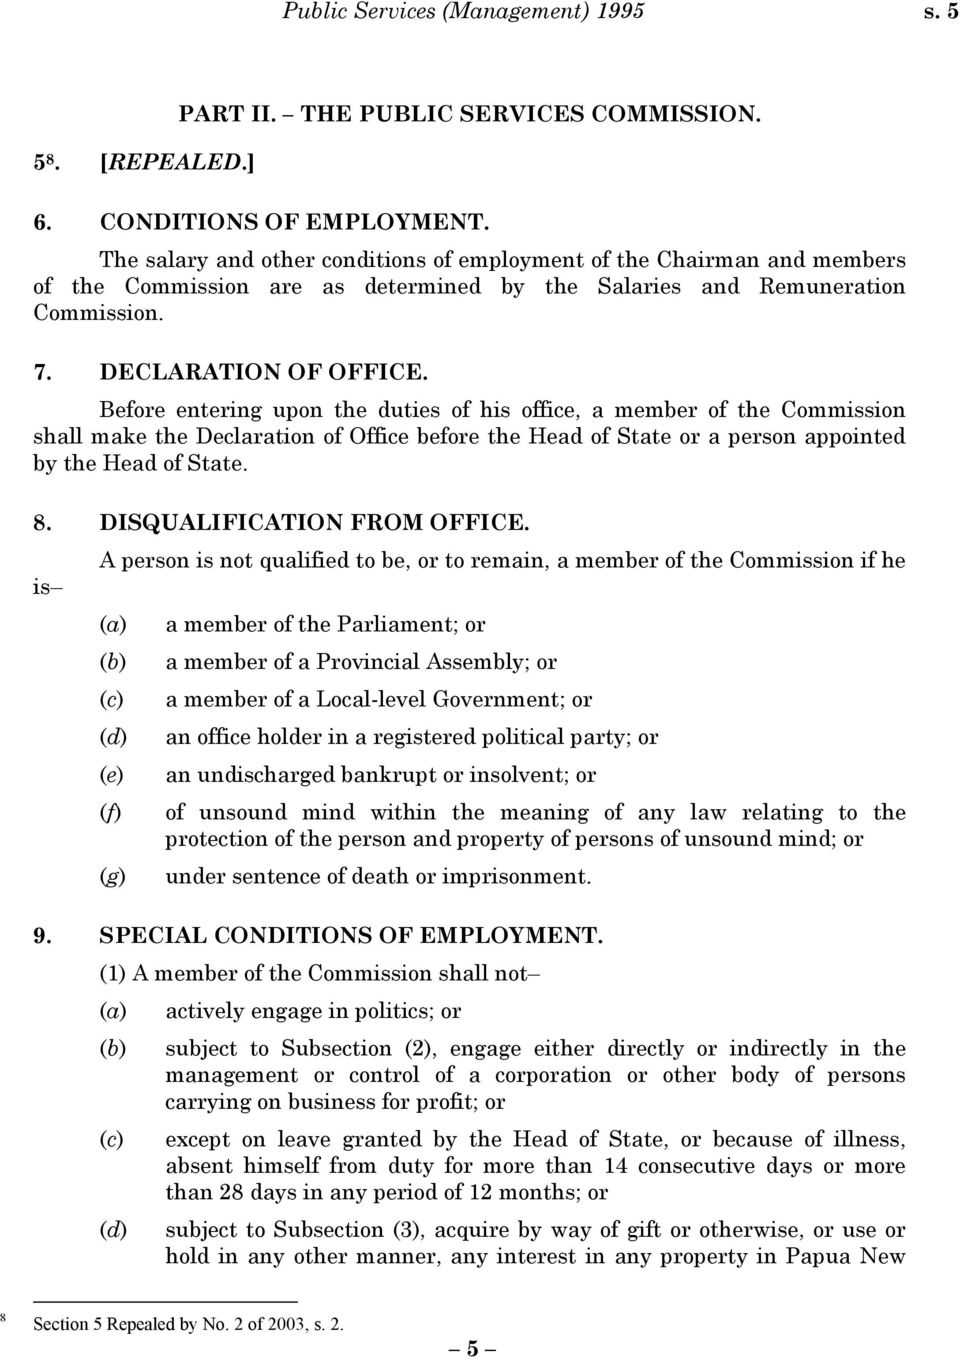 Before entering upon the duties of his office, a member of the Commission shall make the Declaration of Office before the Head of State or a person appointed by the Head of State. 8.